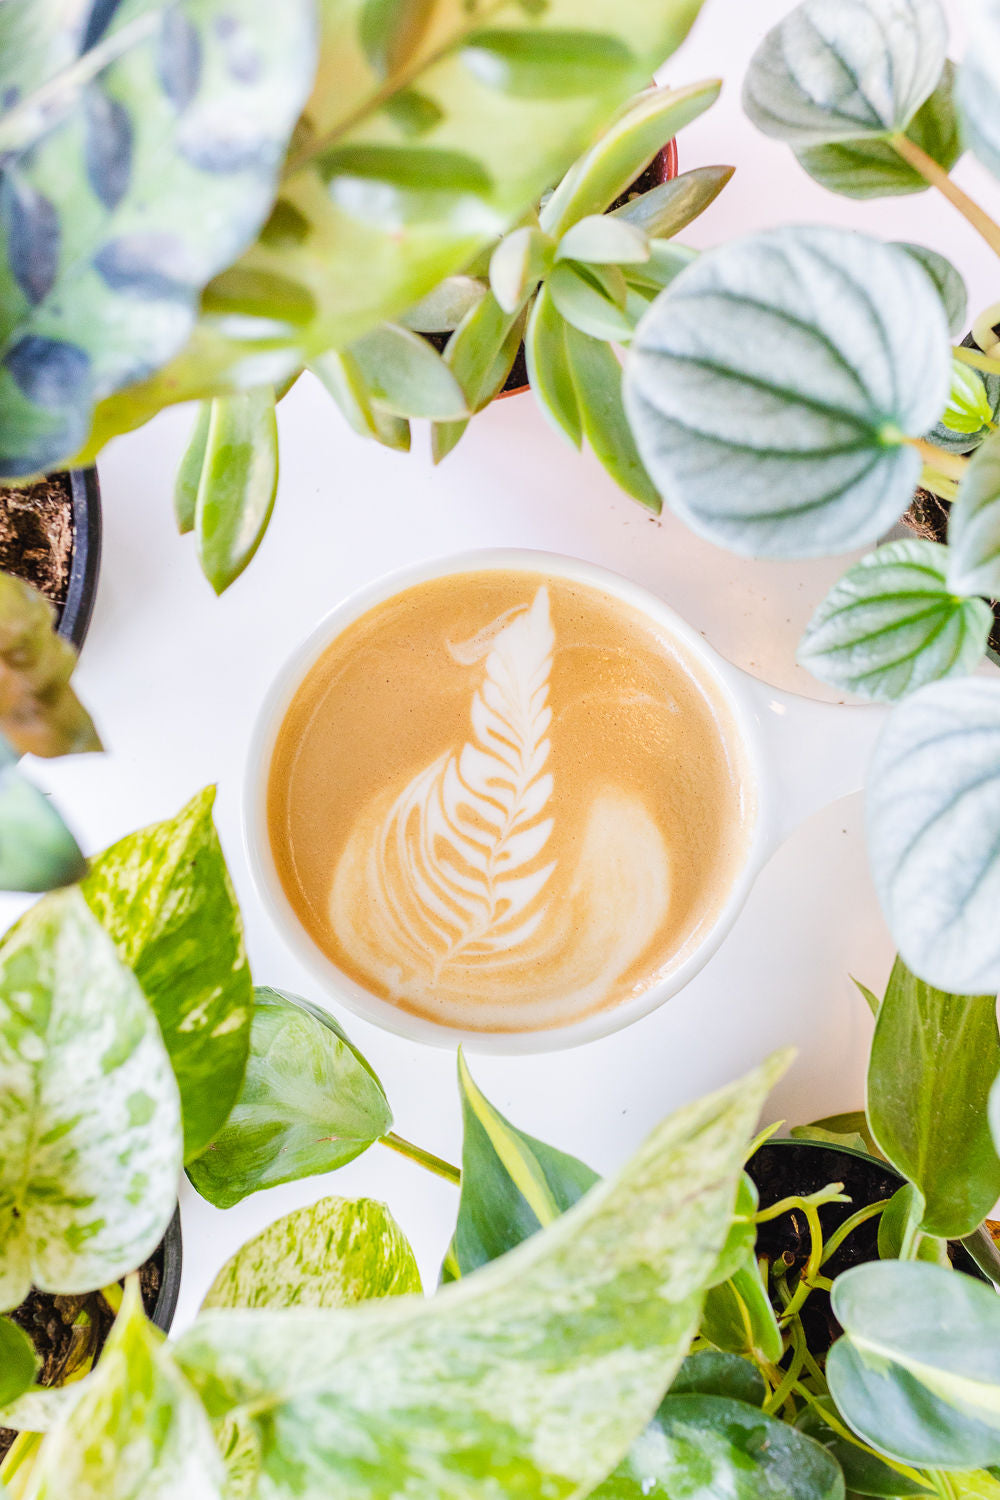 Latte surrounded by houseplants